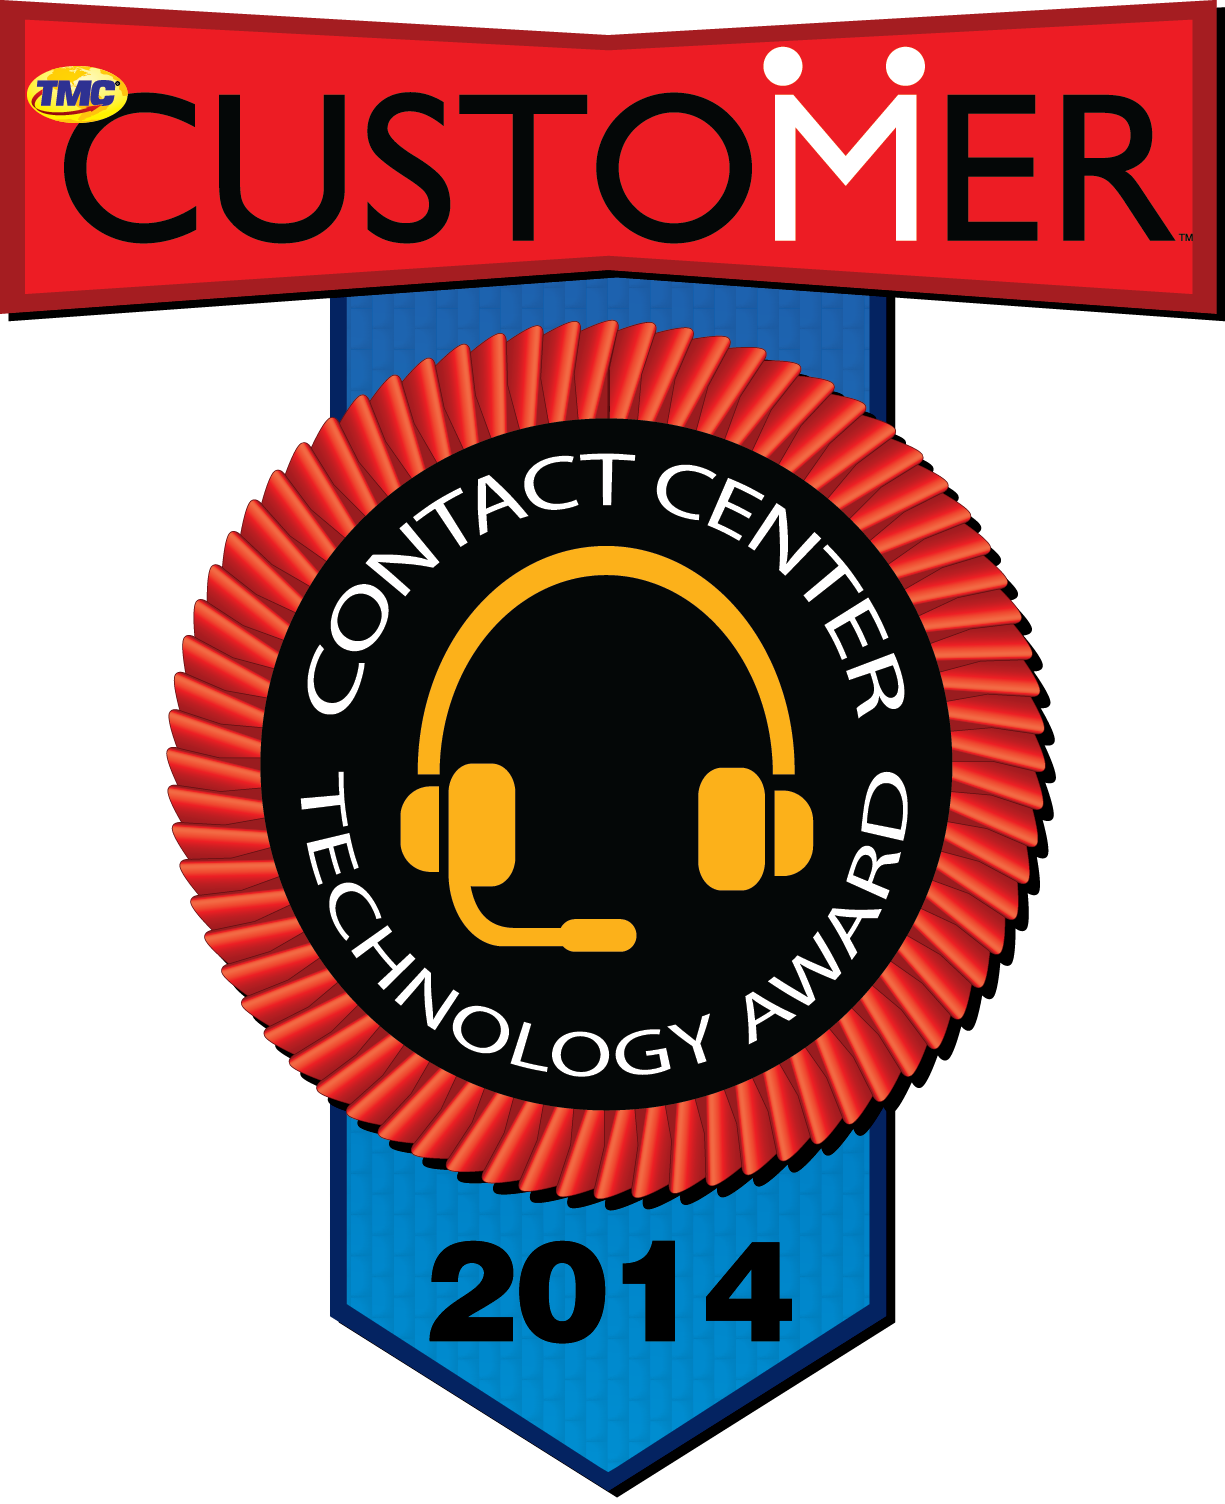 CUSTOMER-Contact-Center-Technology-Award-2014